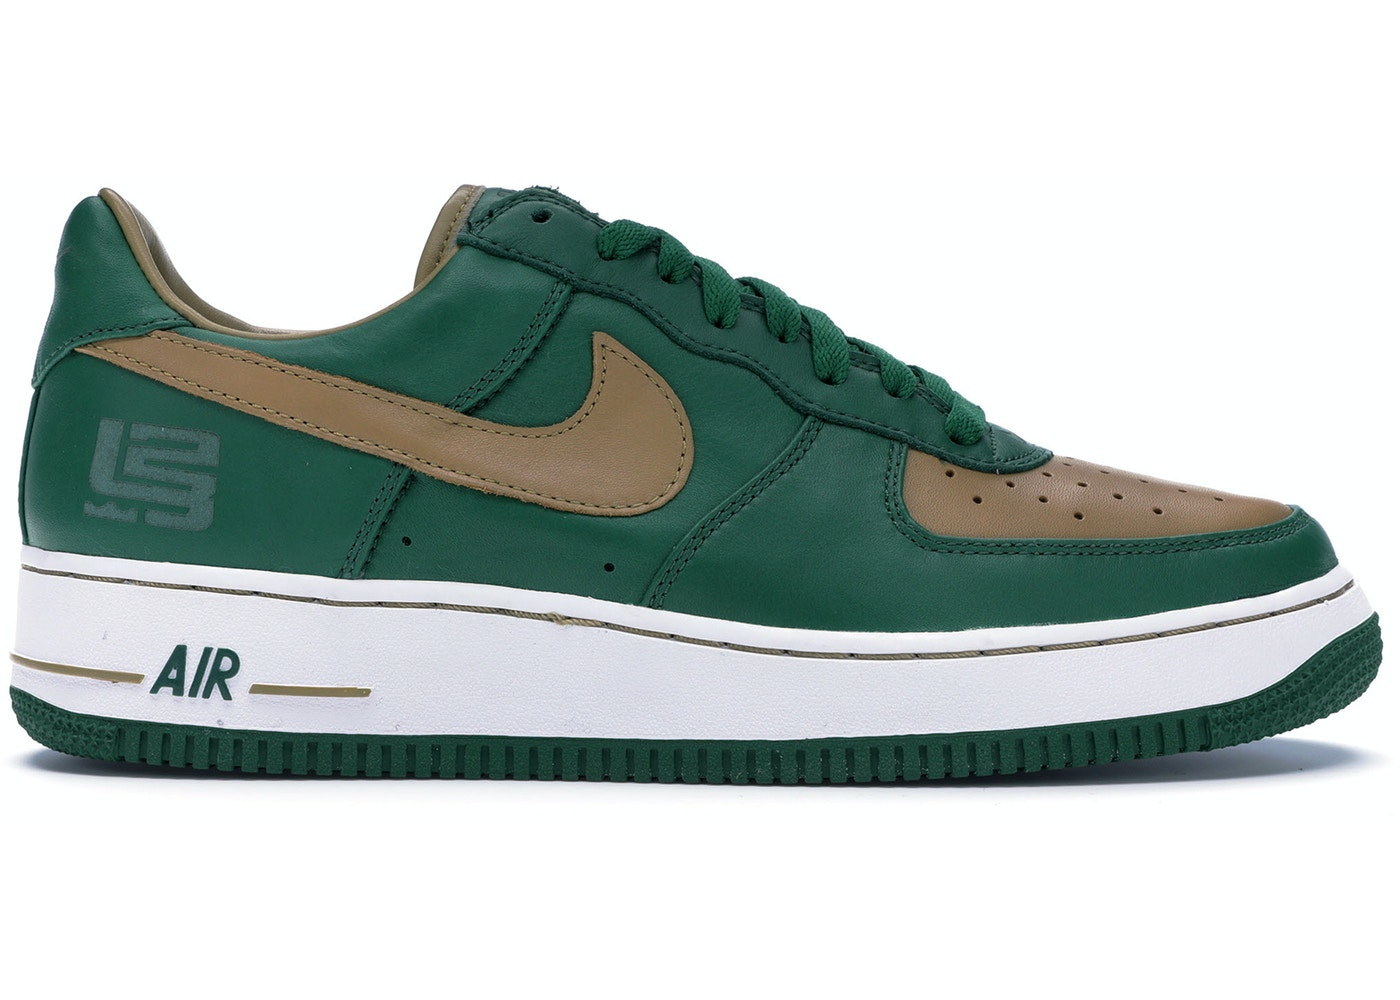 6a9e116235ee9 Air Force 1 Low LeBron SVSM - 309063-371